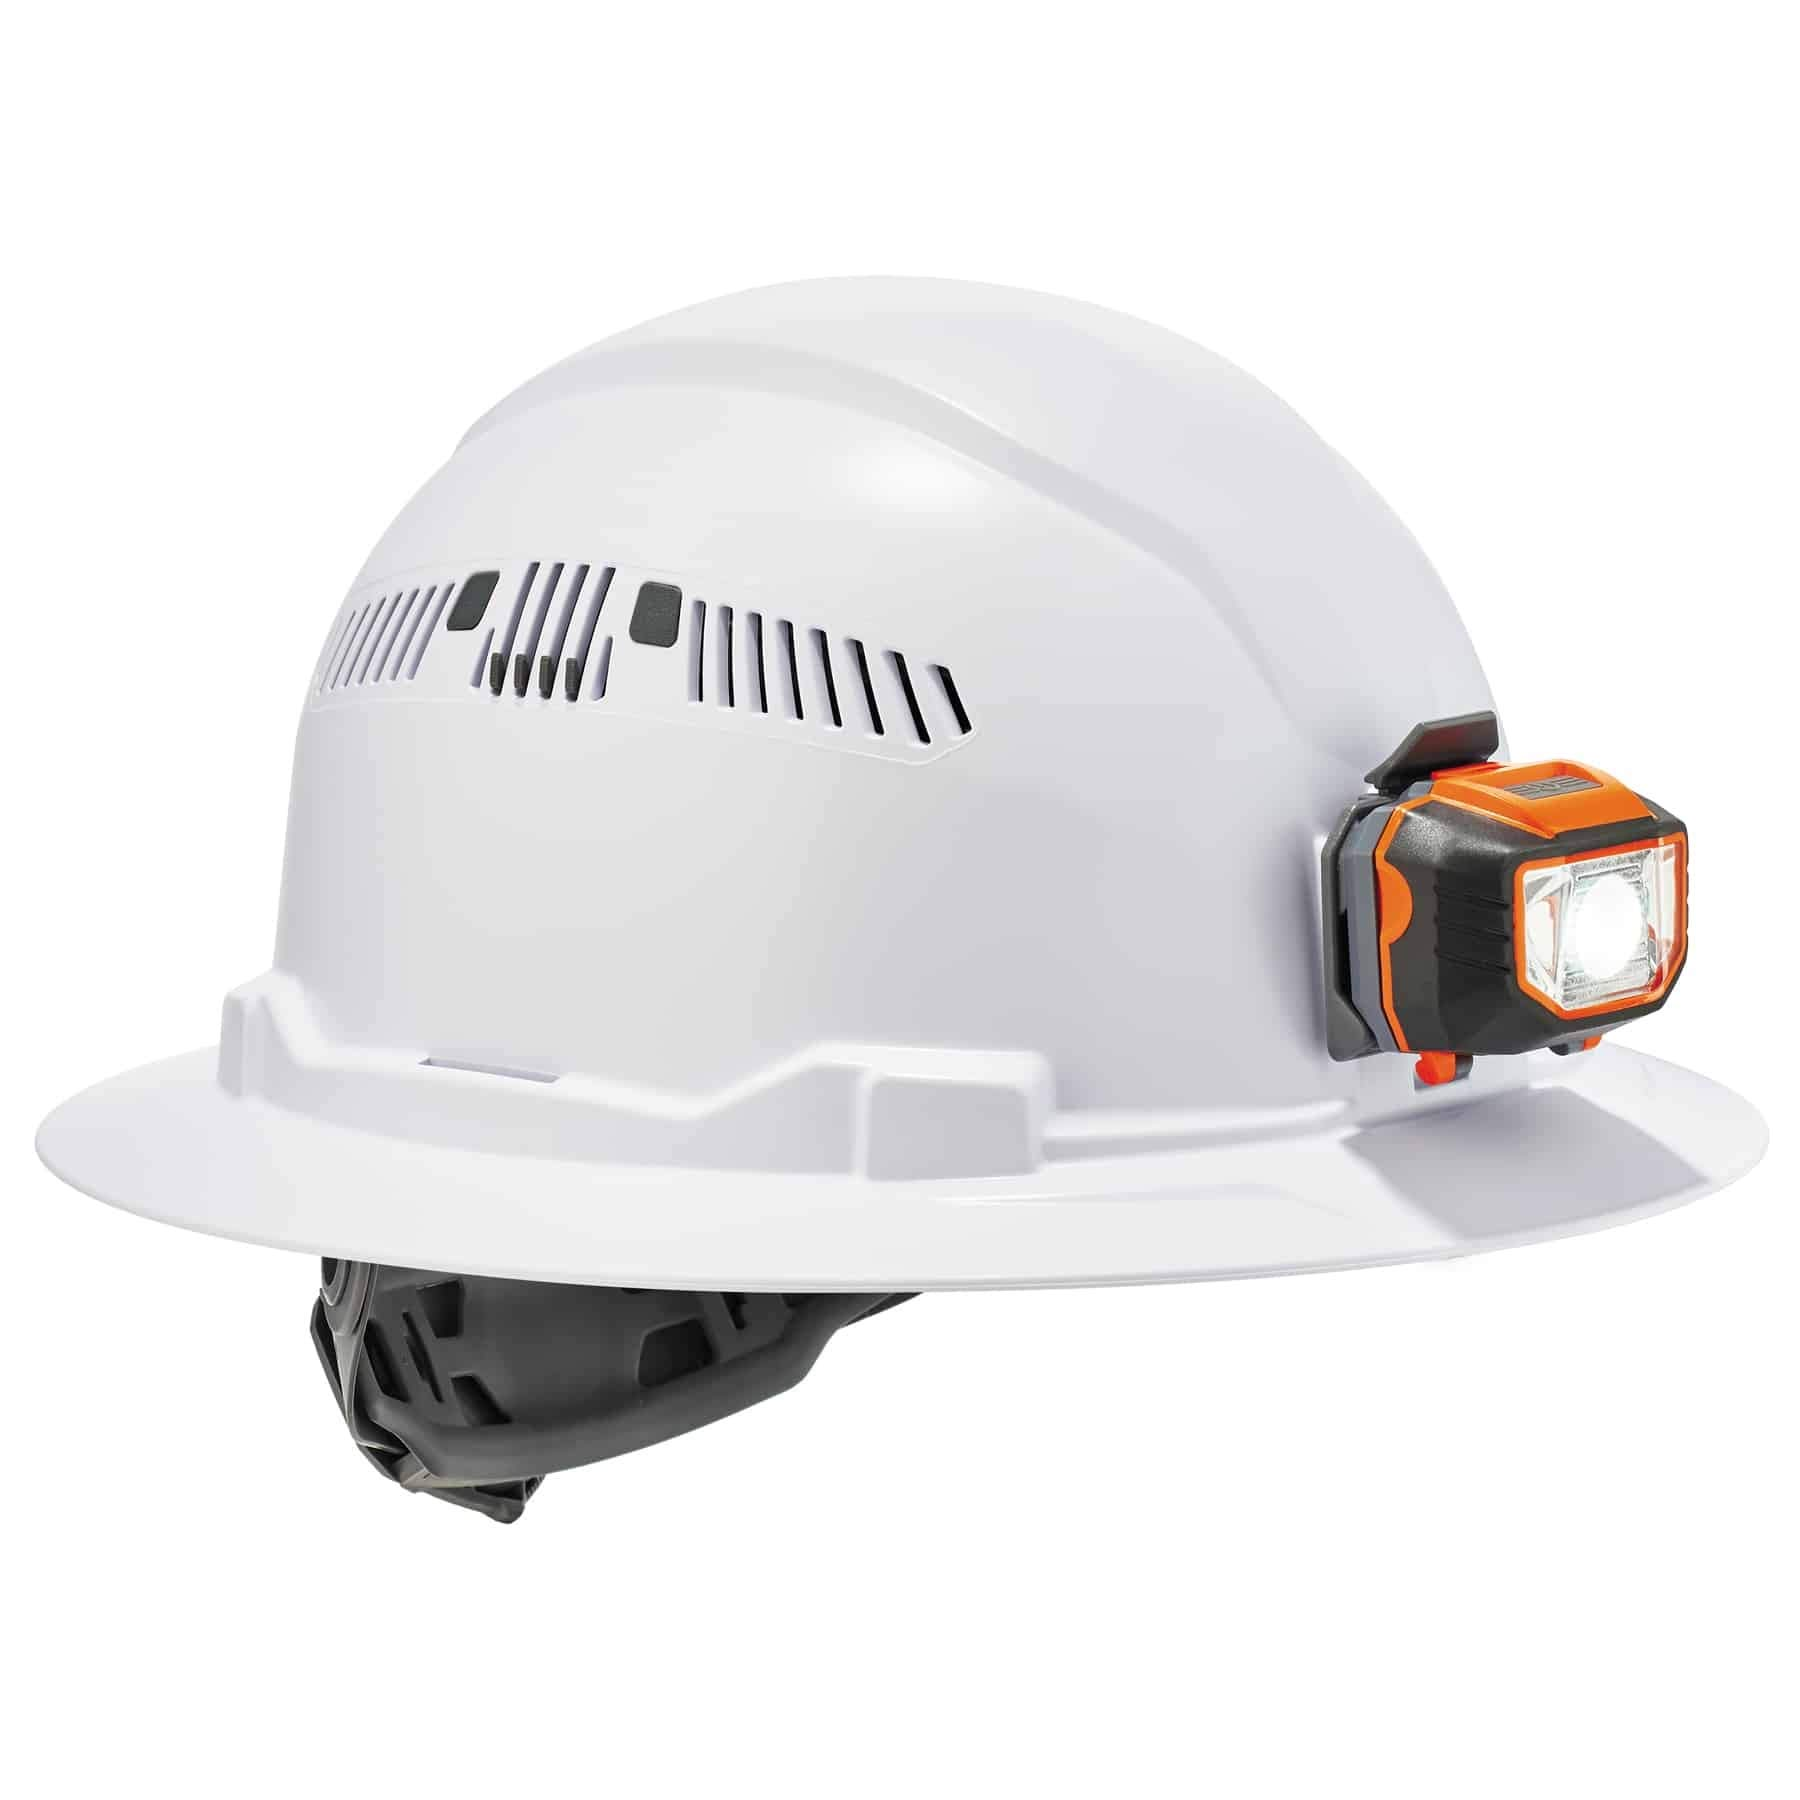 Vented Hard Hat with Light, Full Brim Style, Ratchet Suspension, Class C, Ergodyne Skullerz 8973 by Ergodyne